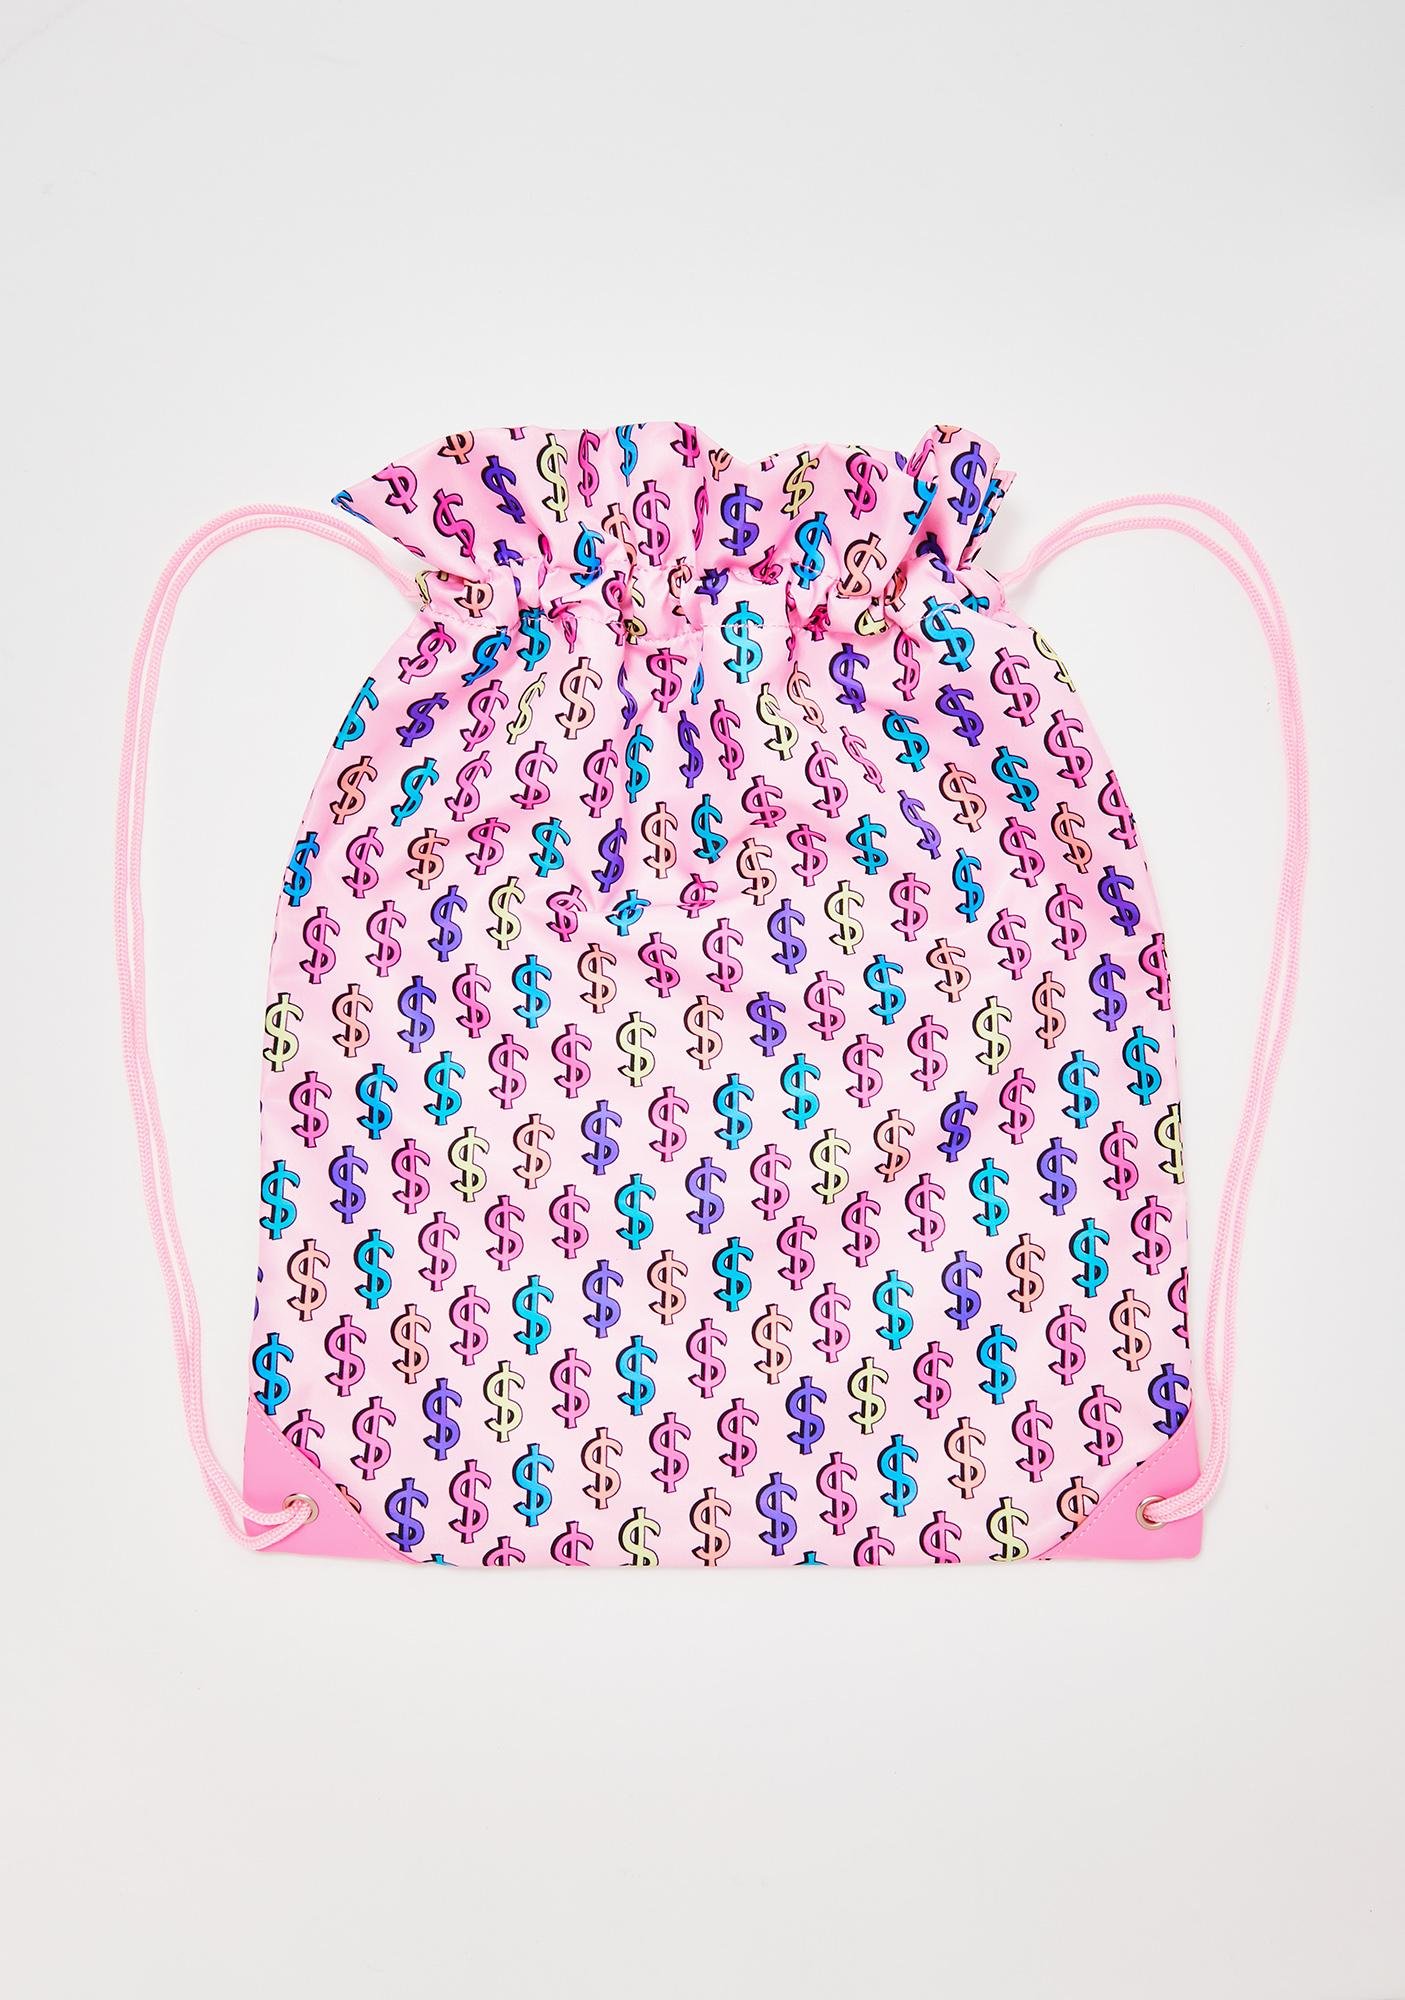 Sugar Thrillz Made Of Money Drawstring Bag